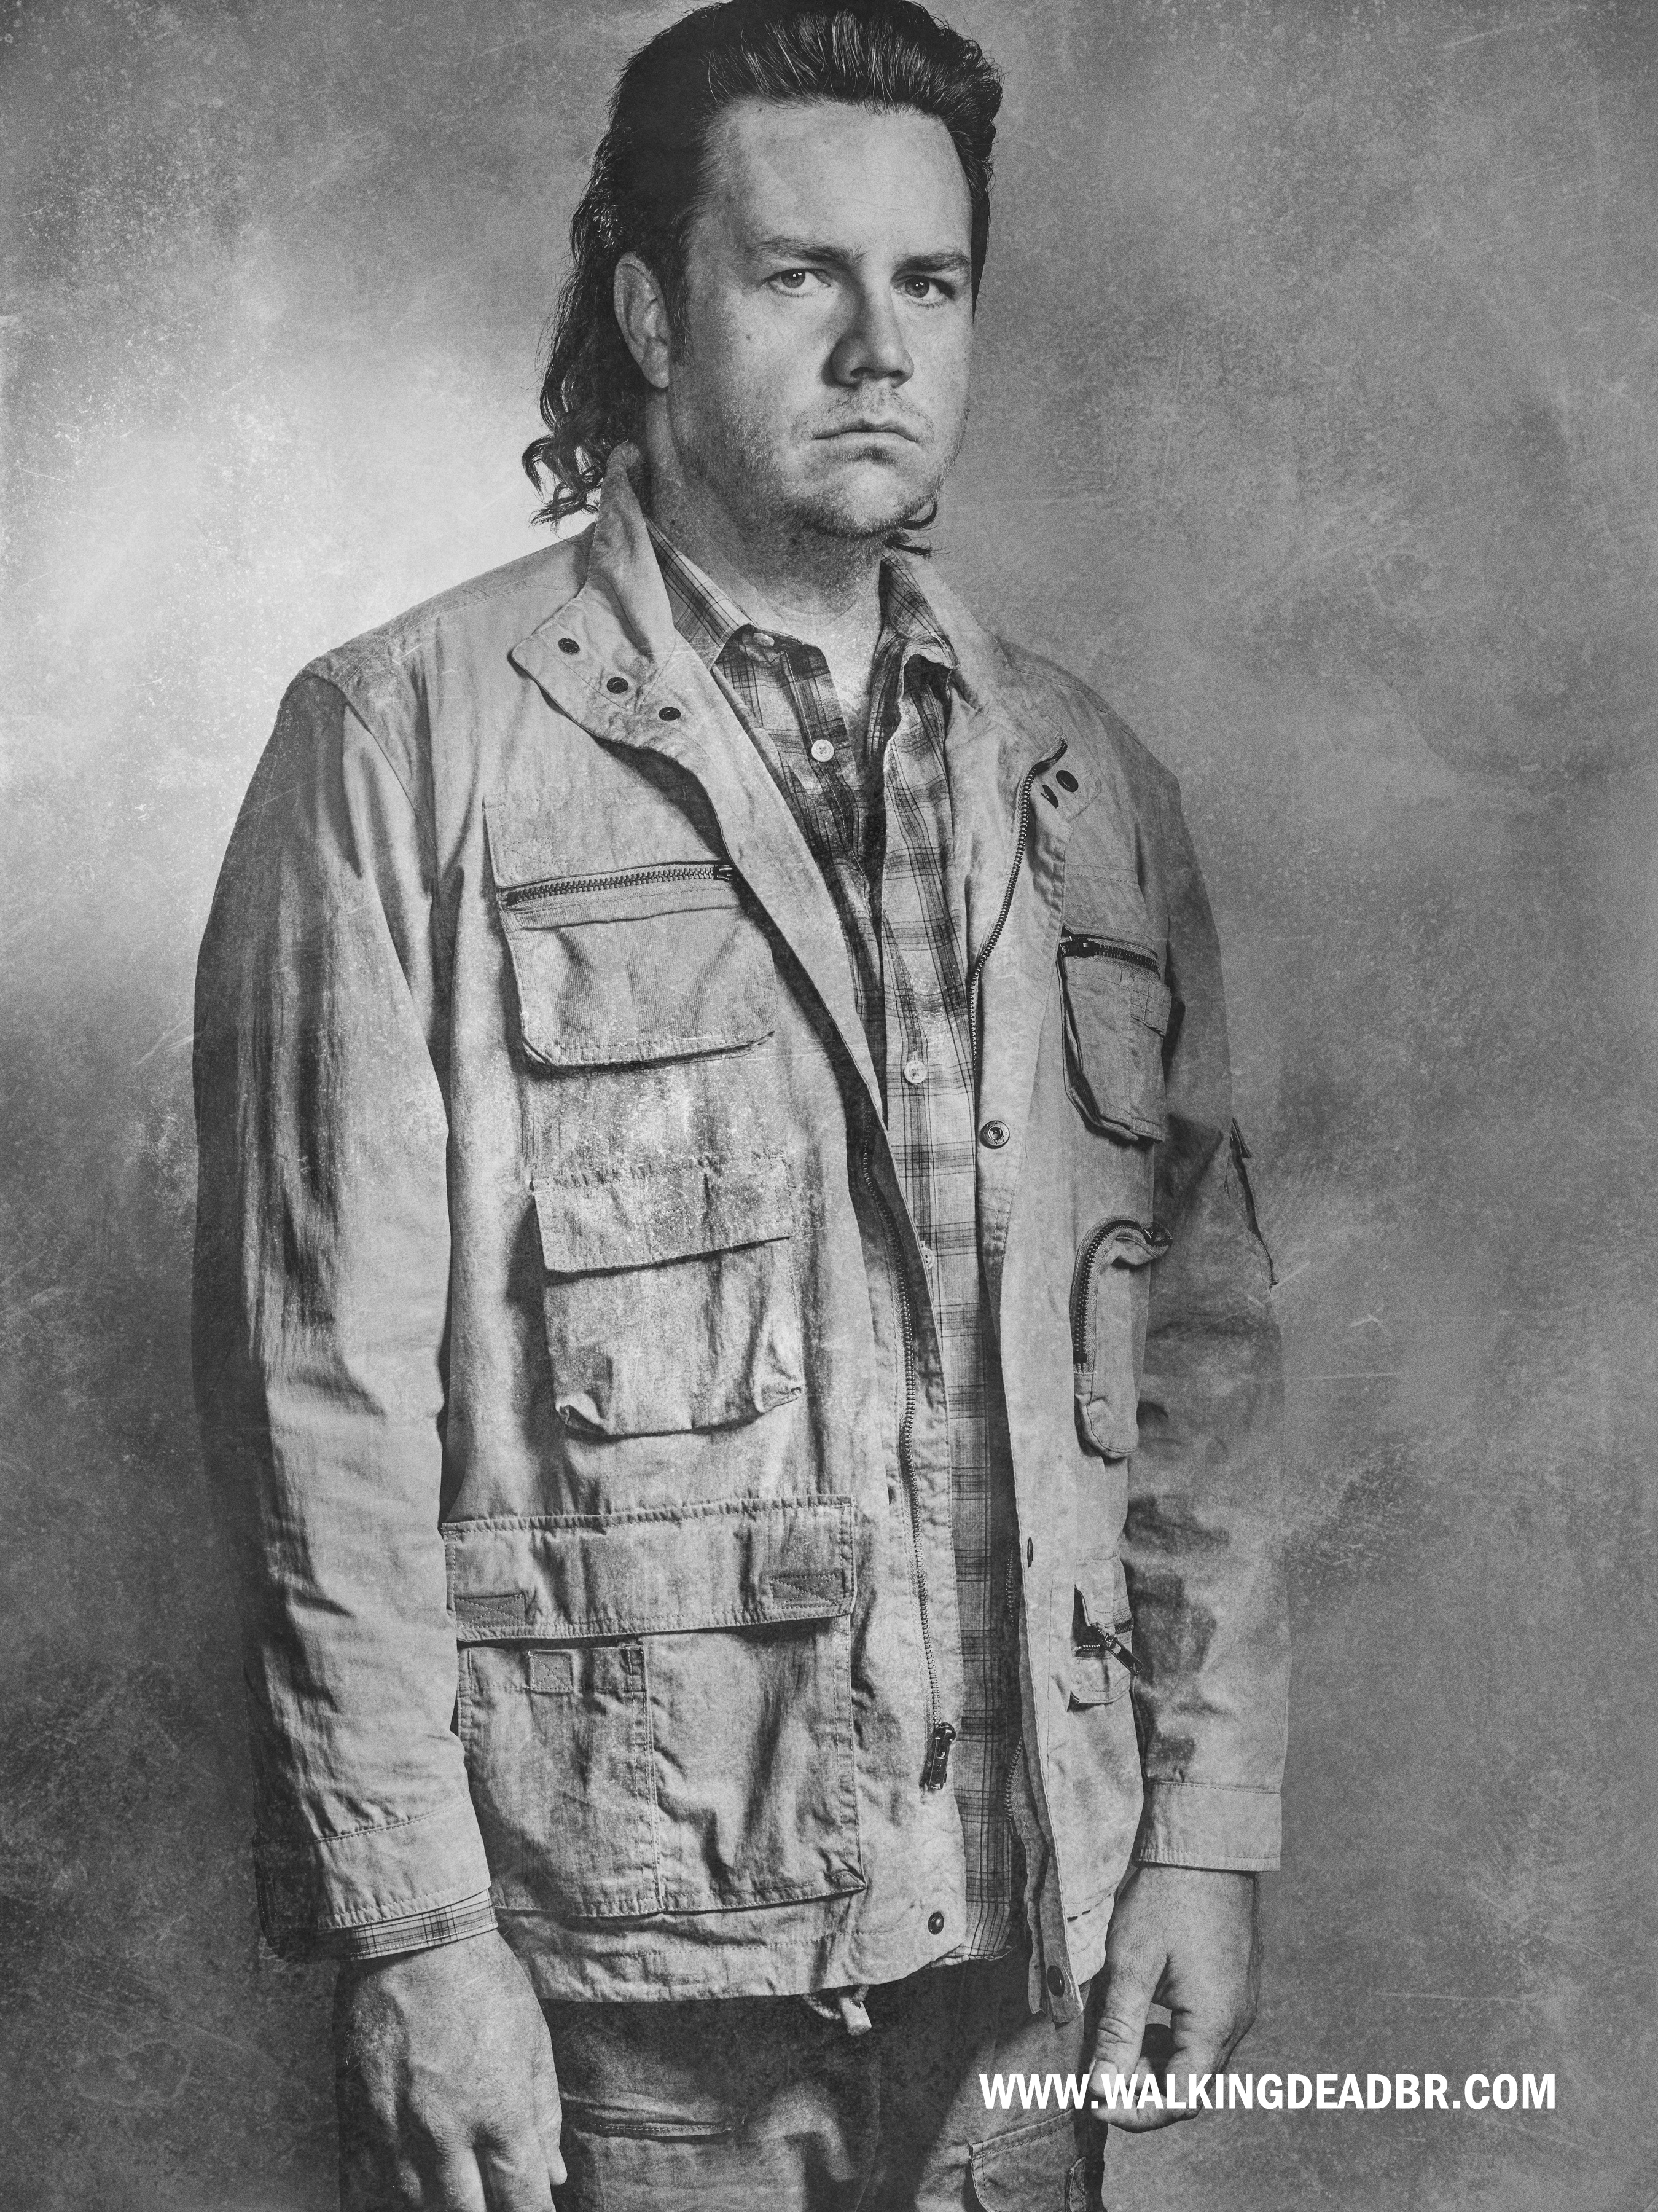 013-eugene-porter-the-walking-dead-6-temporada-portrait